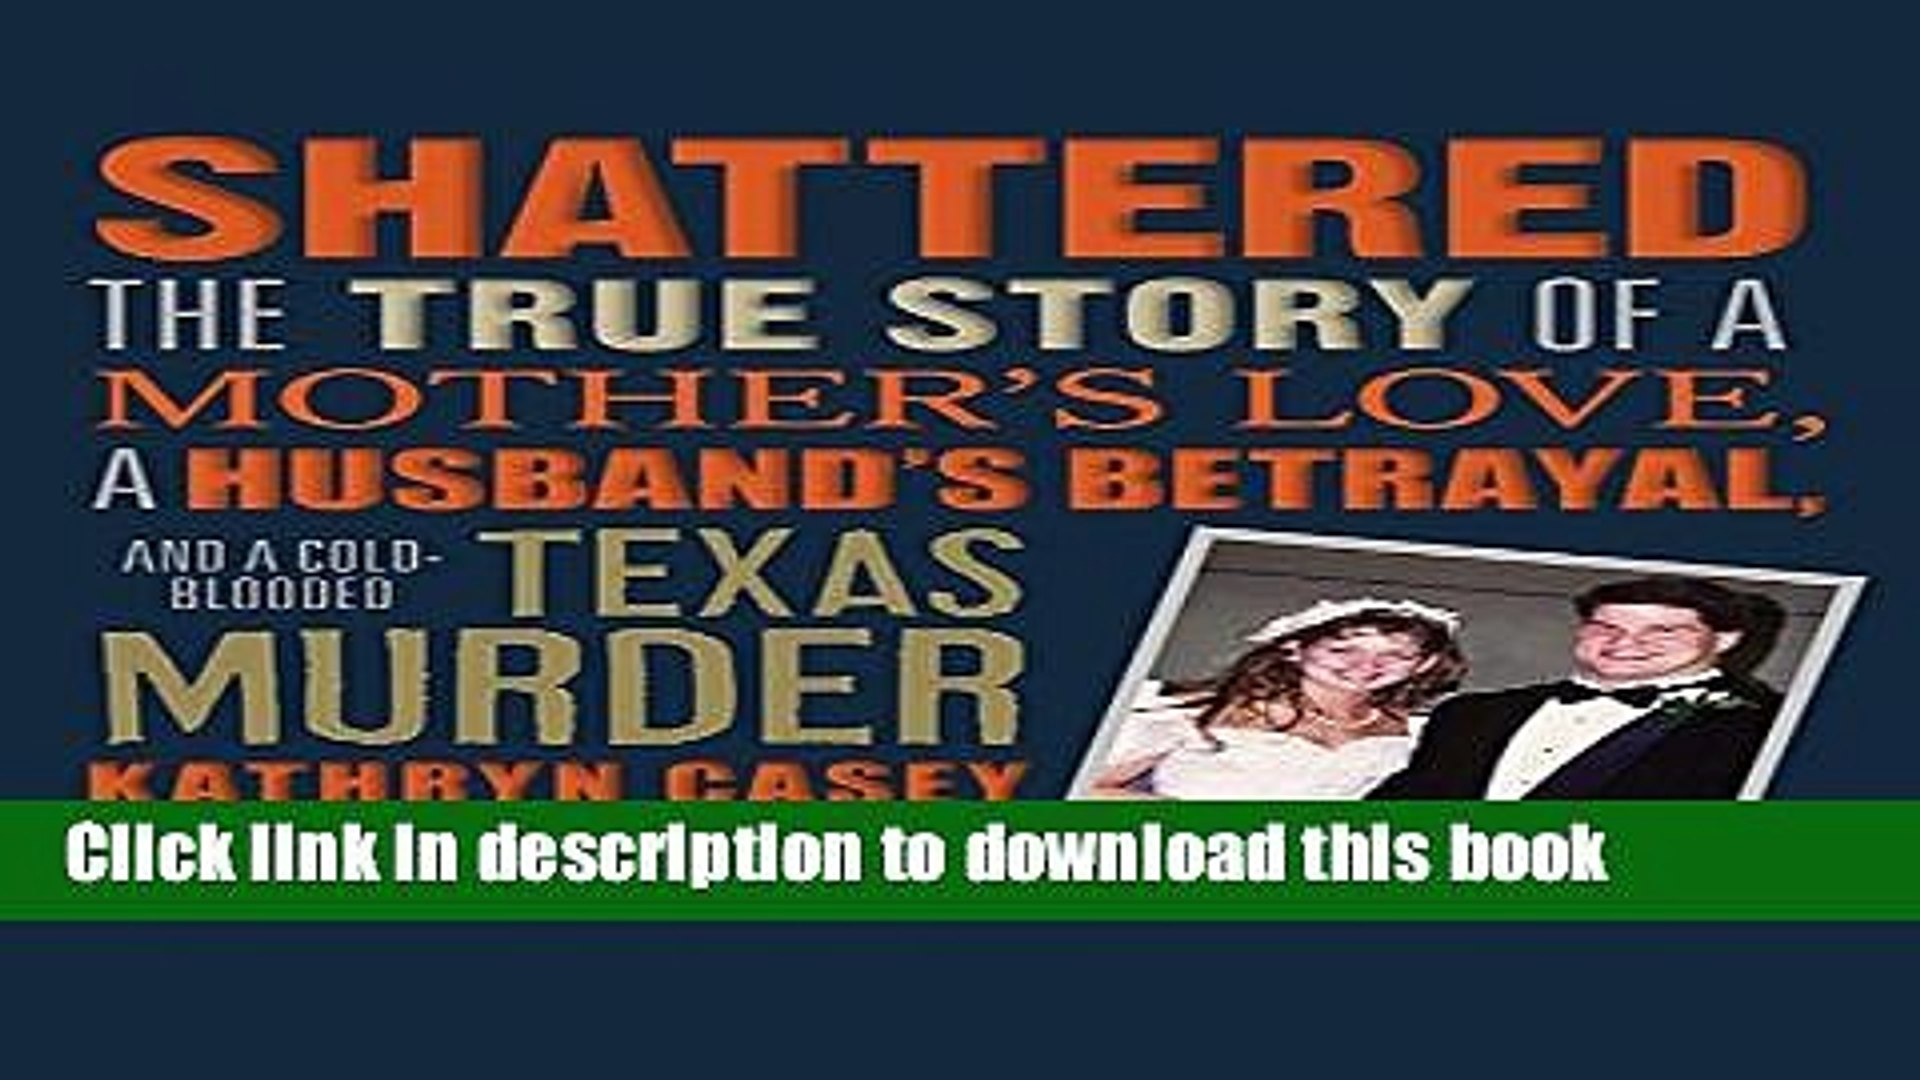 Books Shattered: The True Story of a Mother s Love, a Husband s Betrayal, and a Cold-Blooded Texas